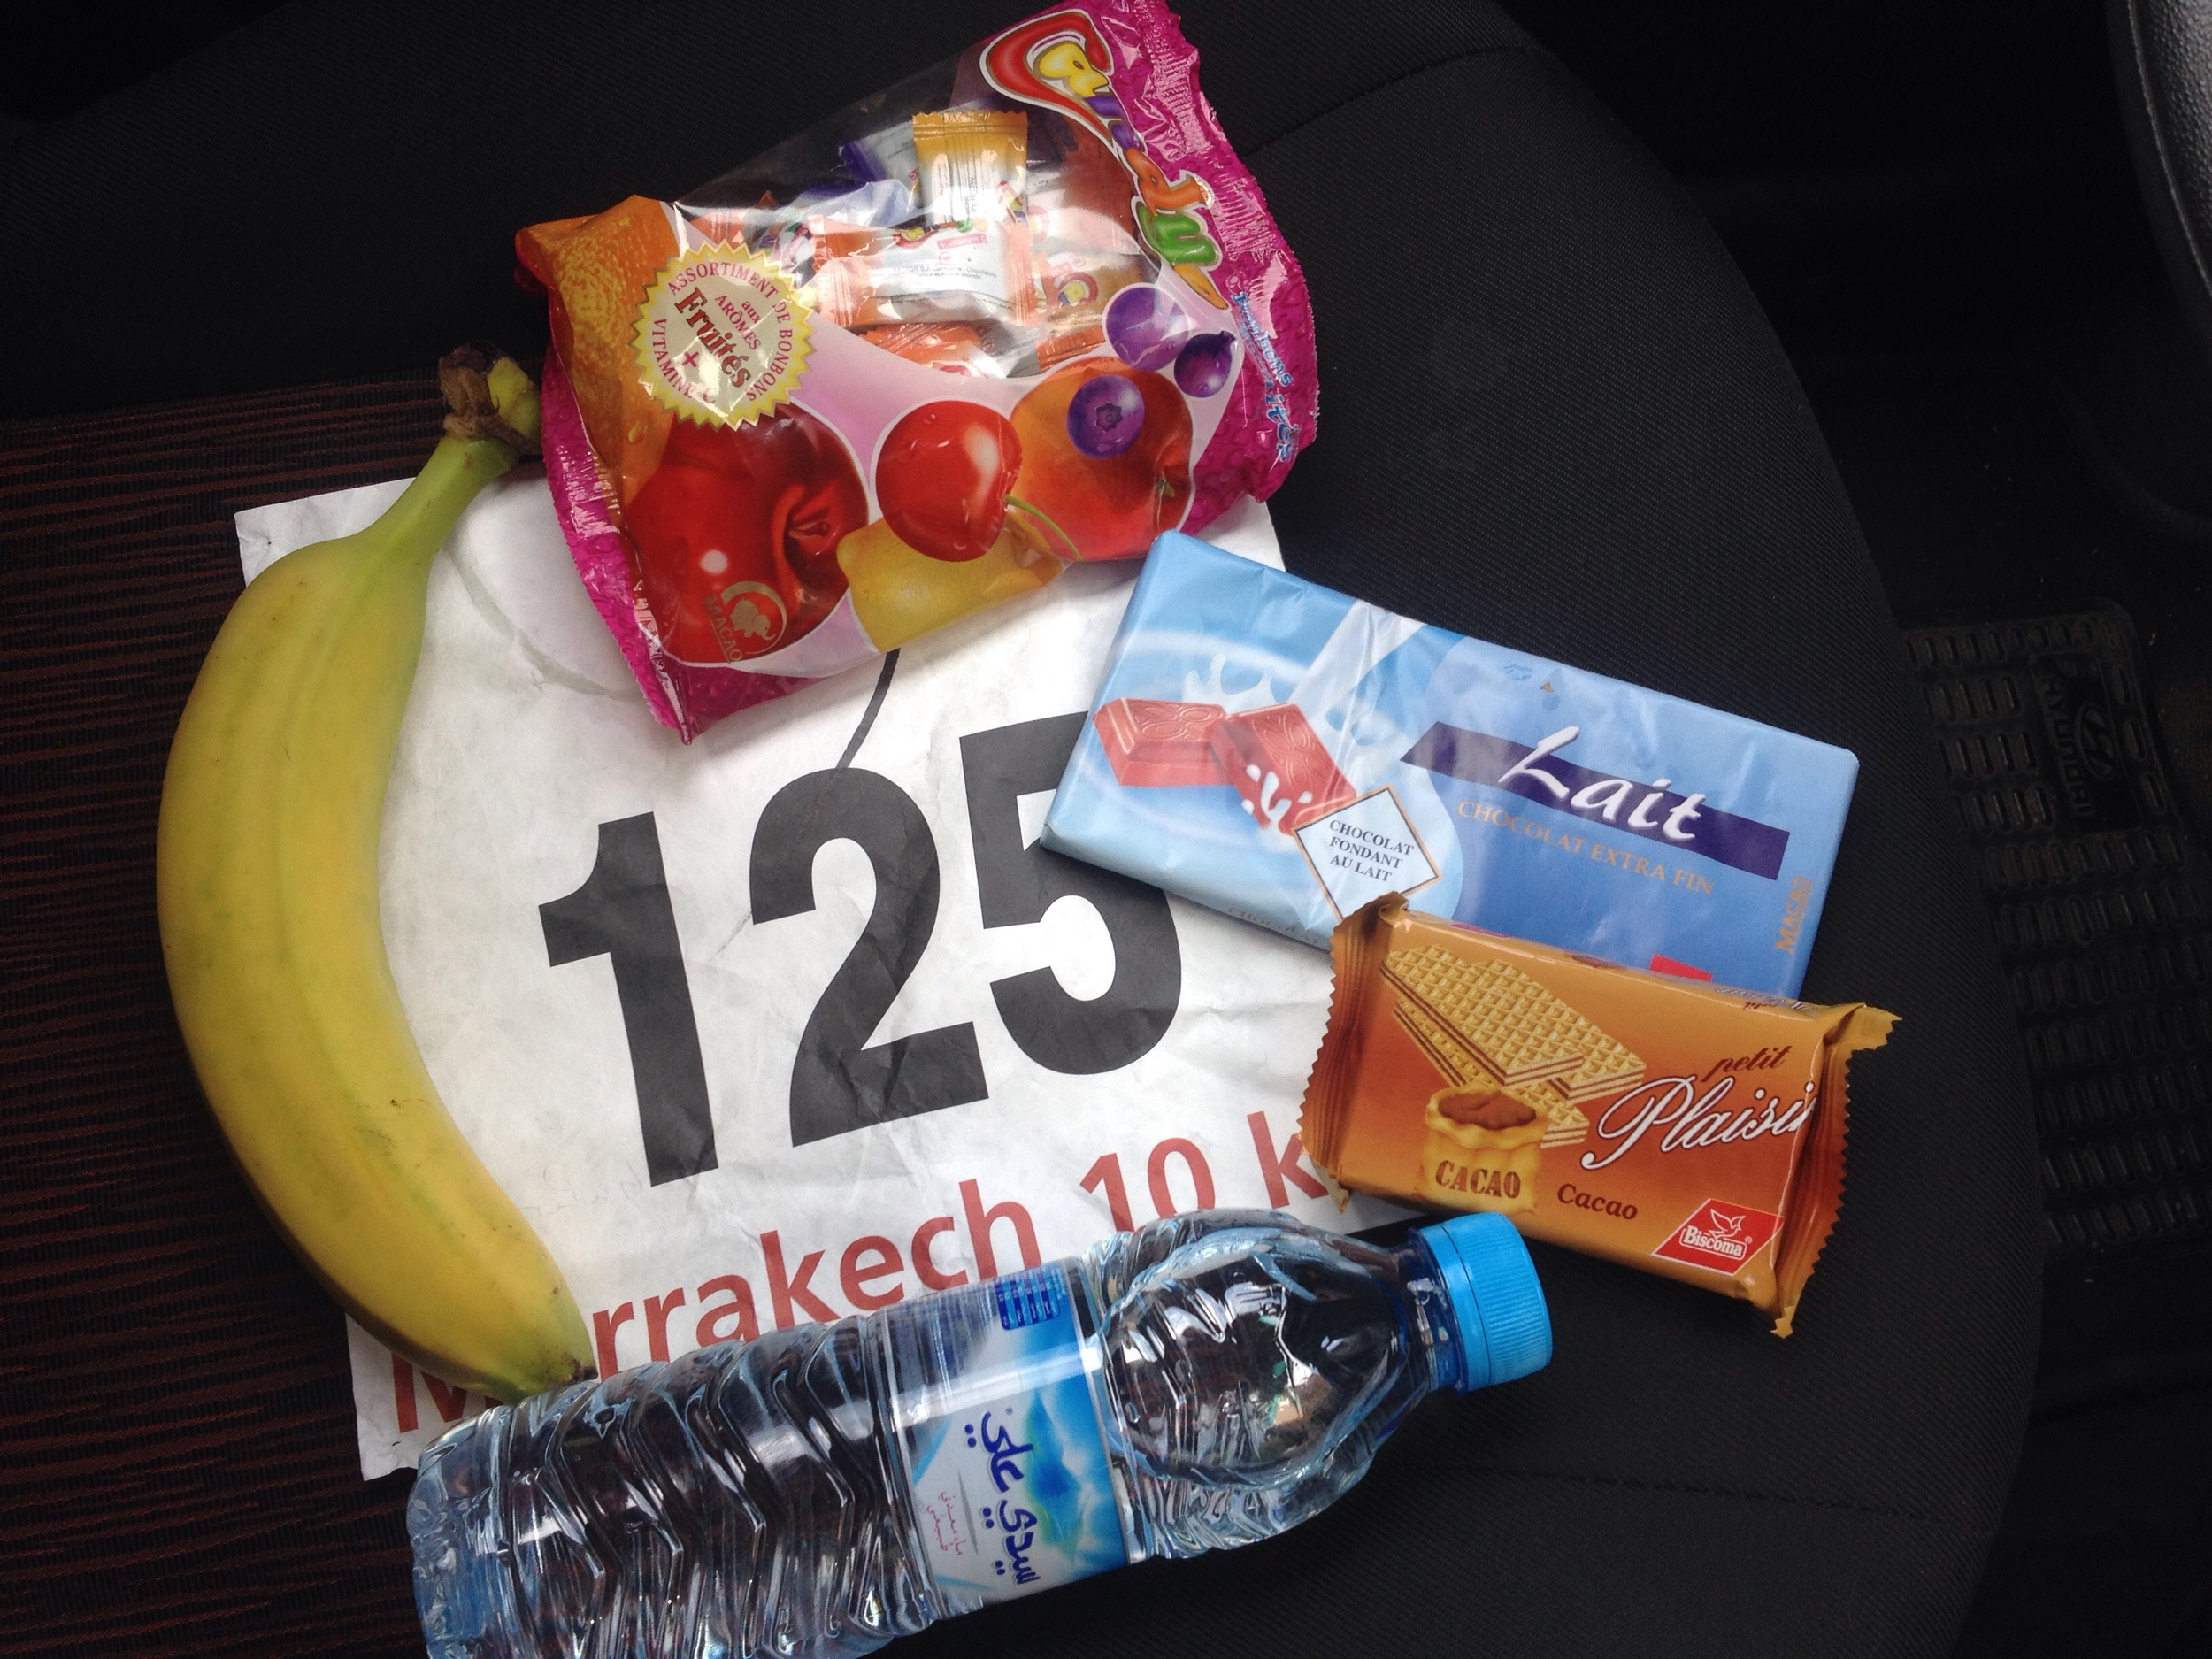 My race number and the stuff from my swag bag